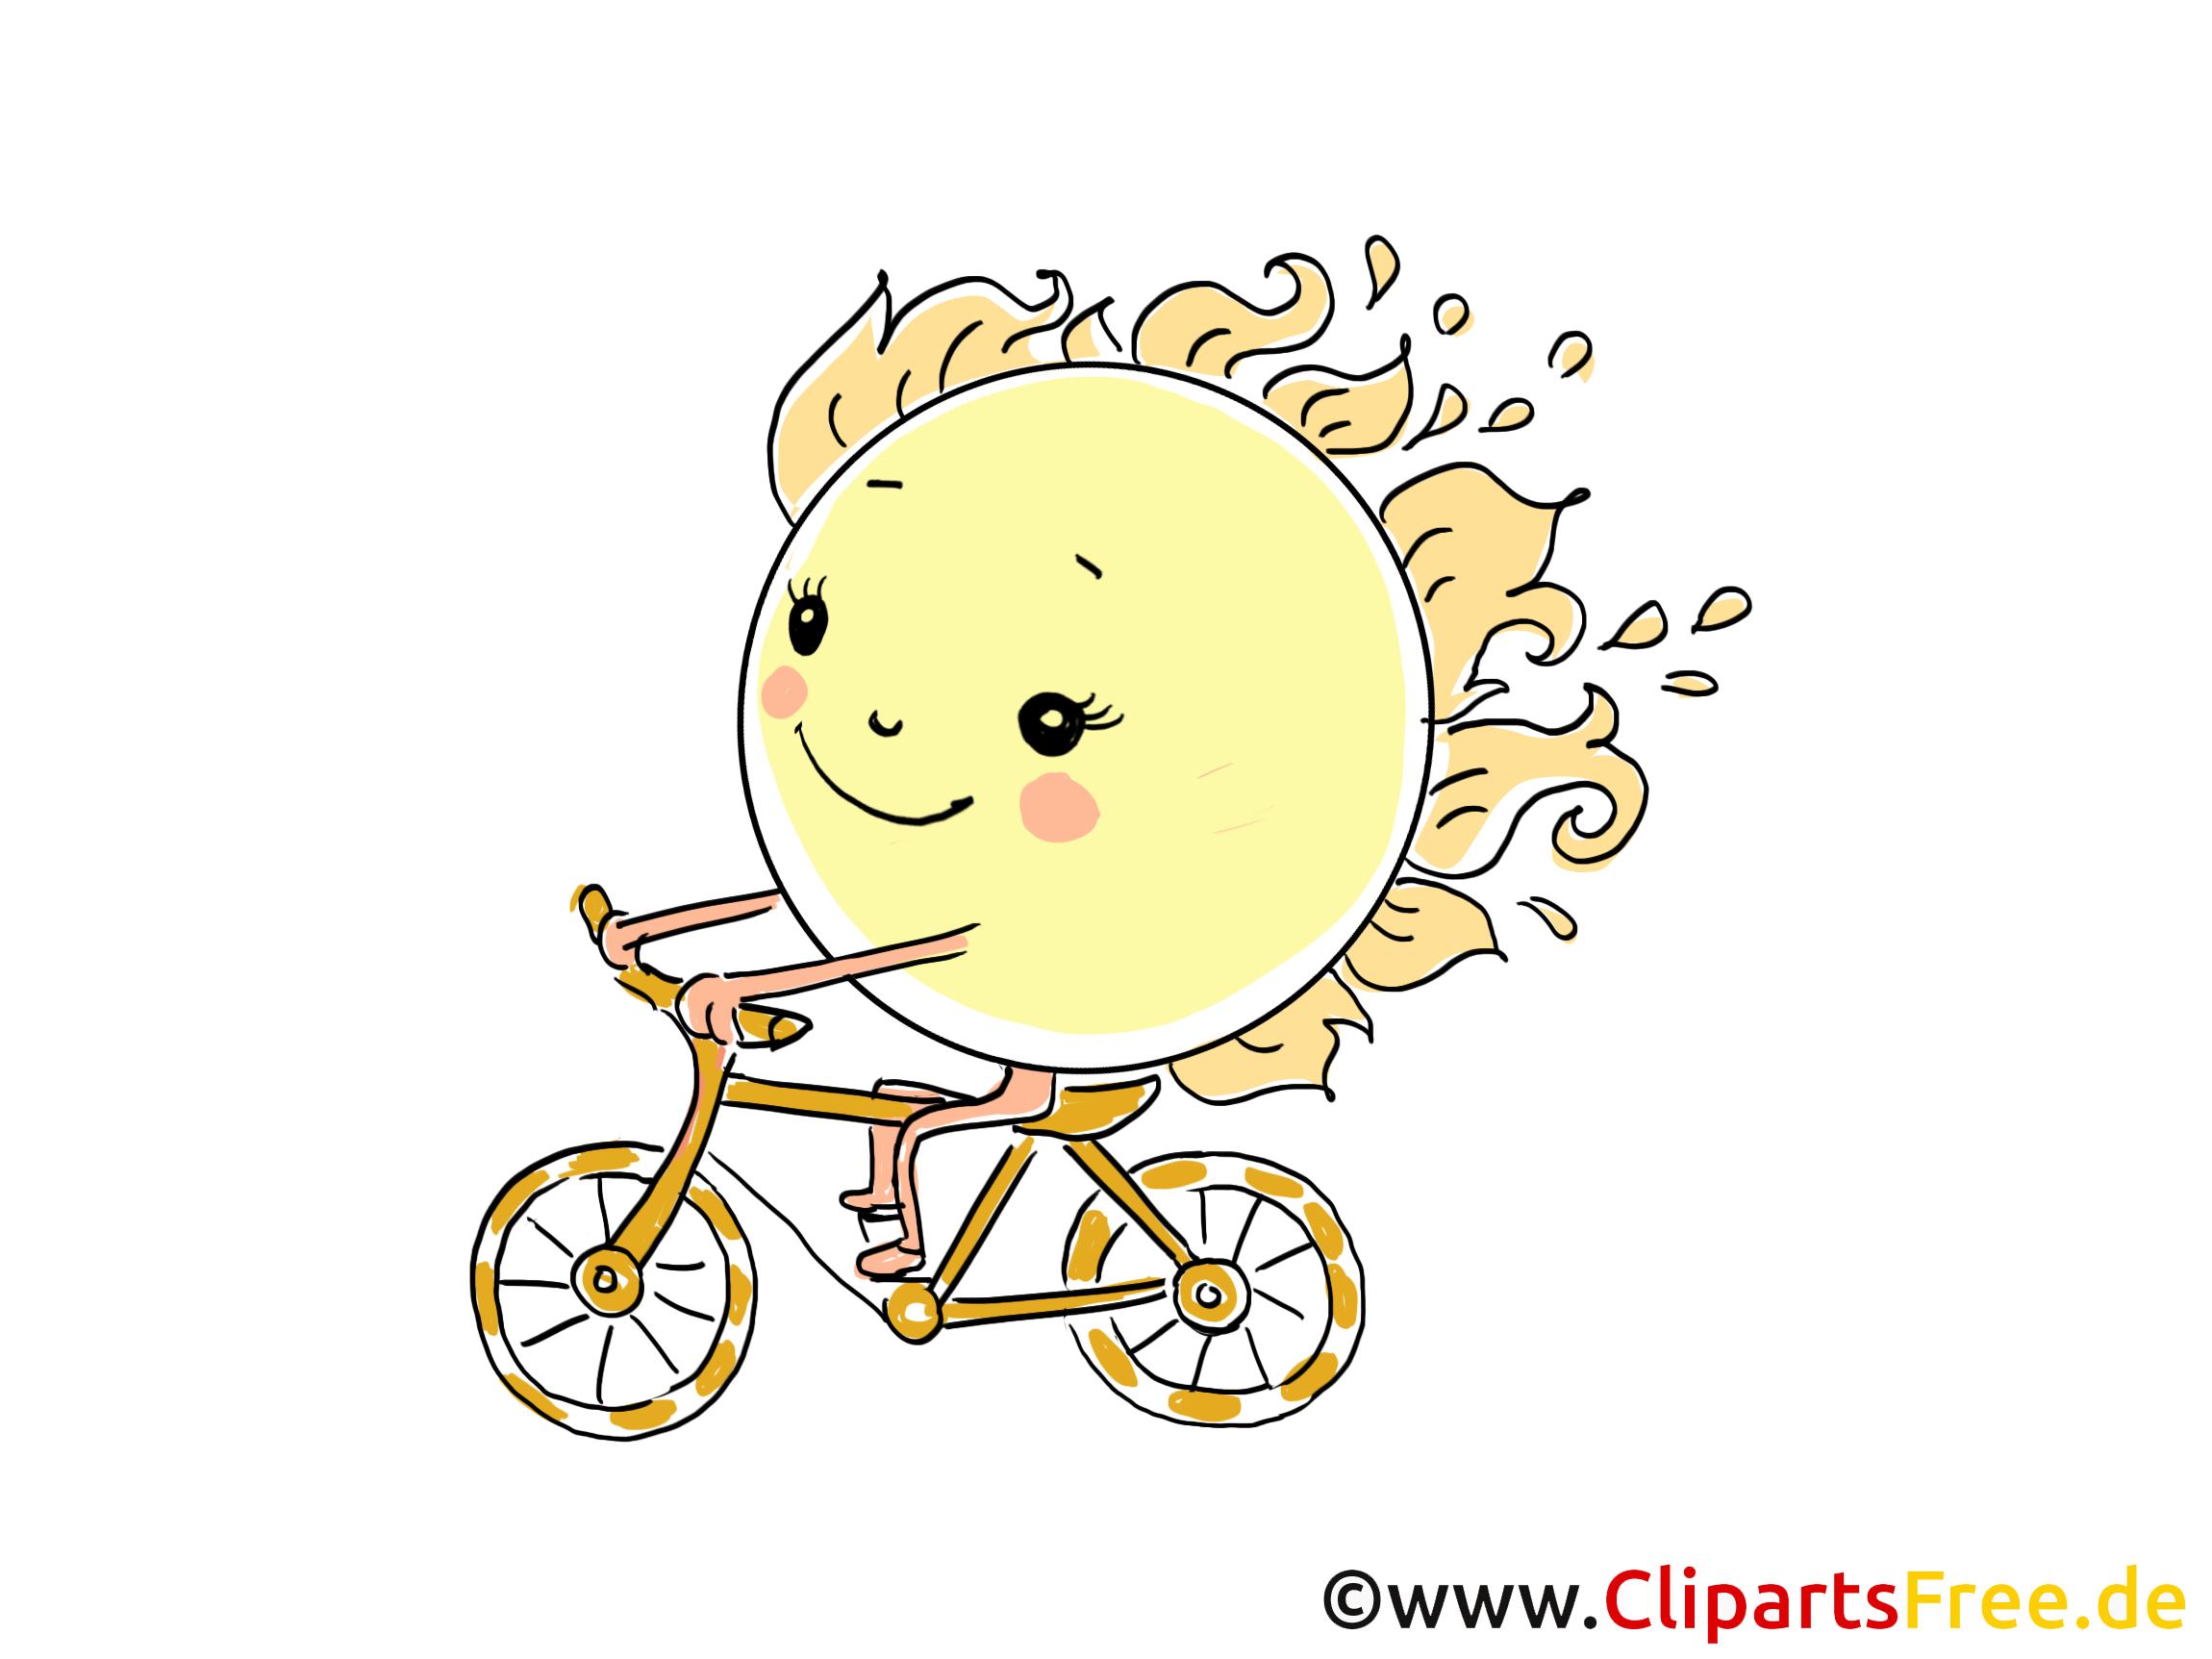 Bicyclette dessin soleil cliparts t l charger temps - Bicyclette dessin ...